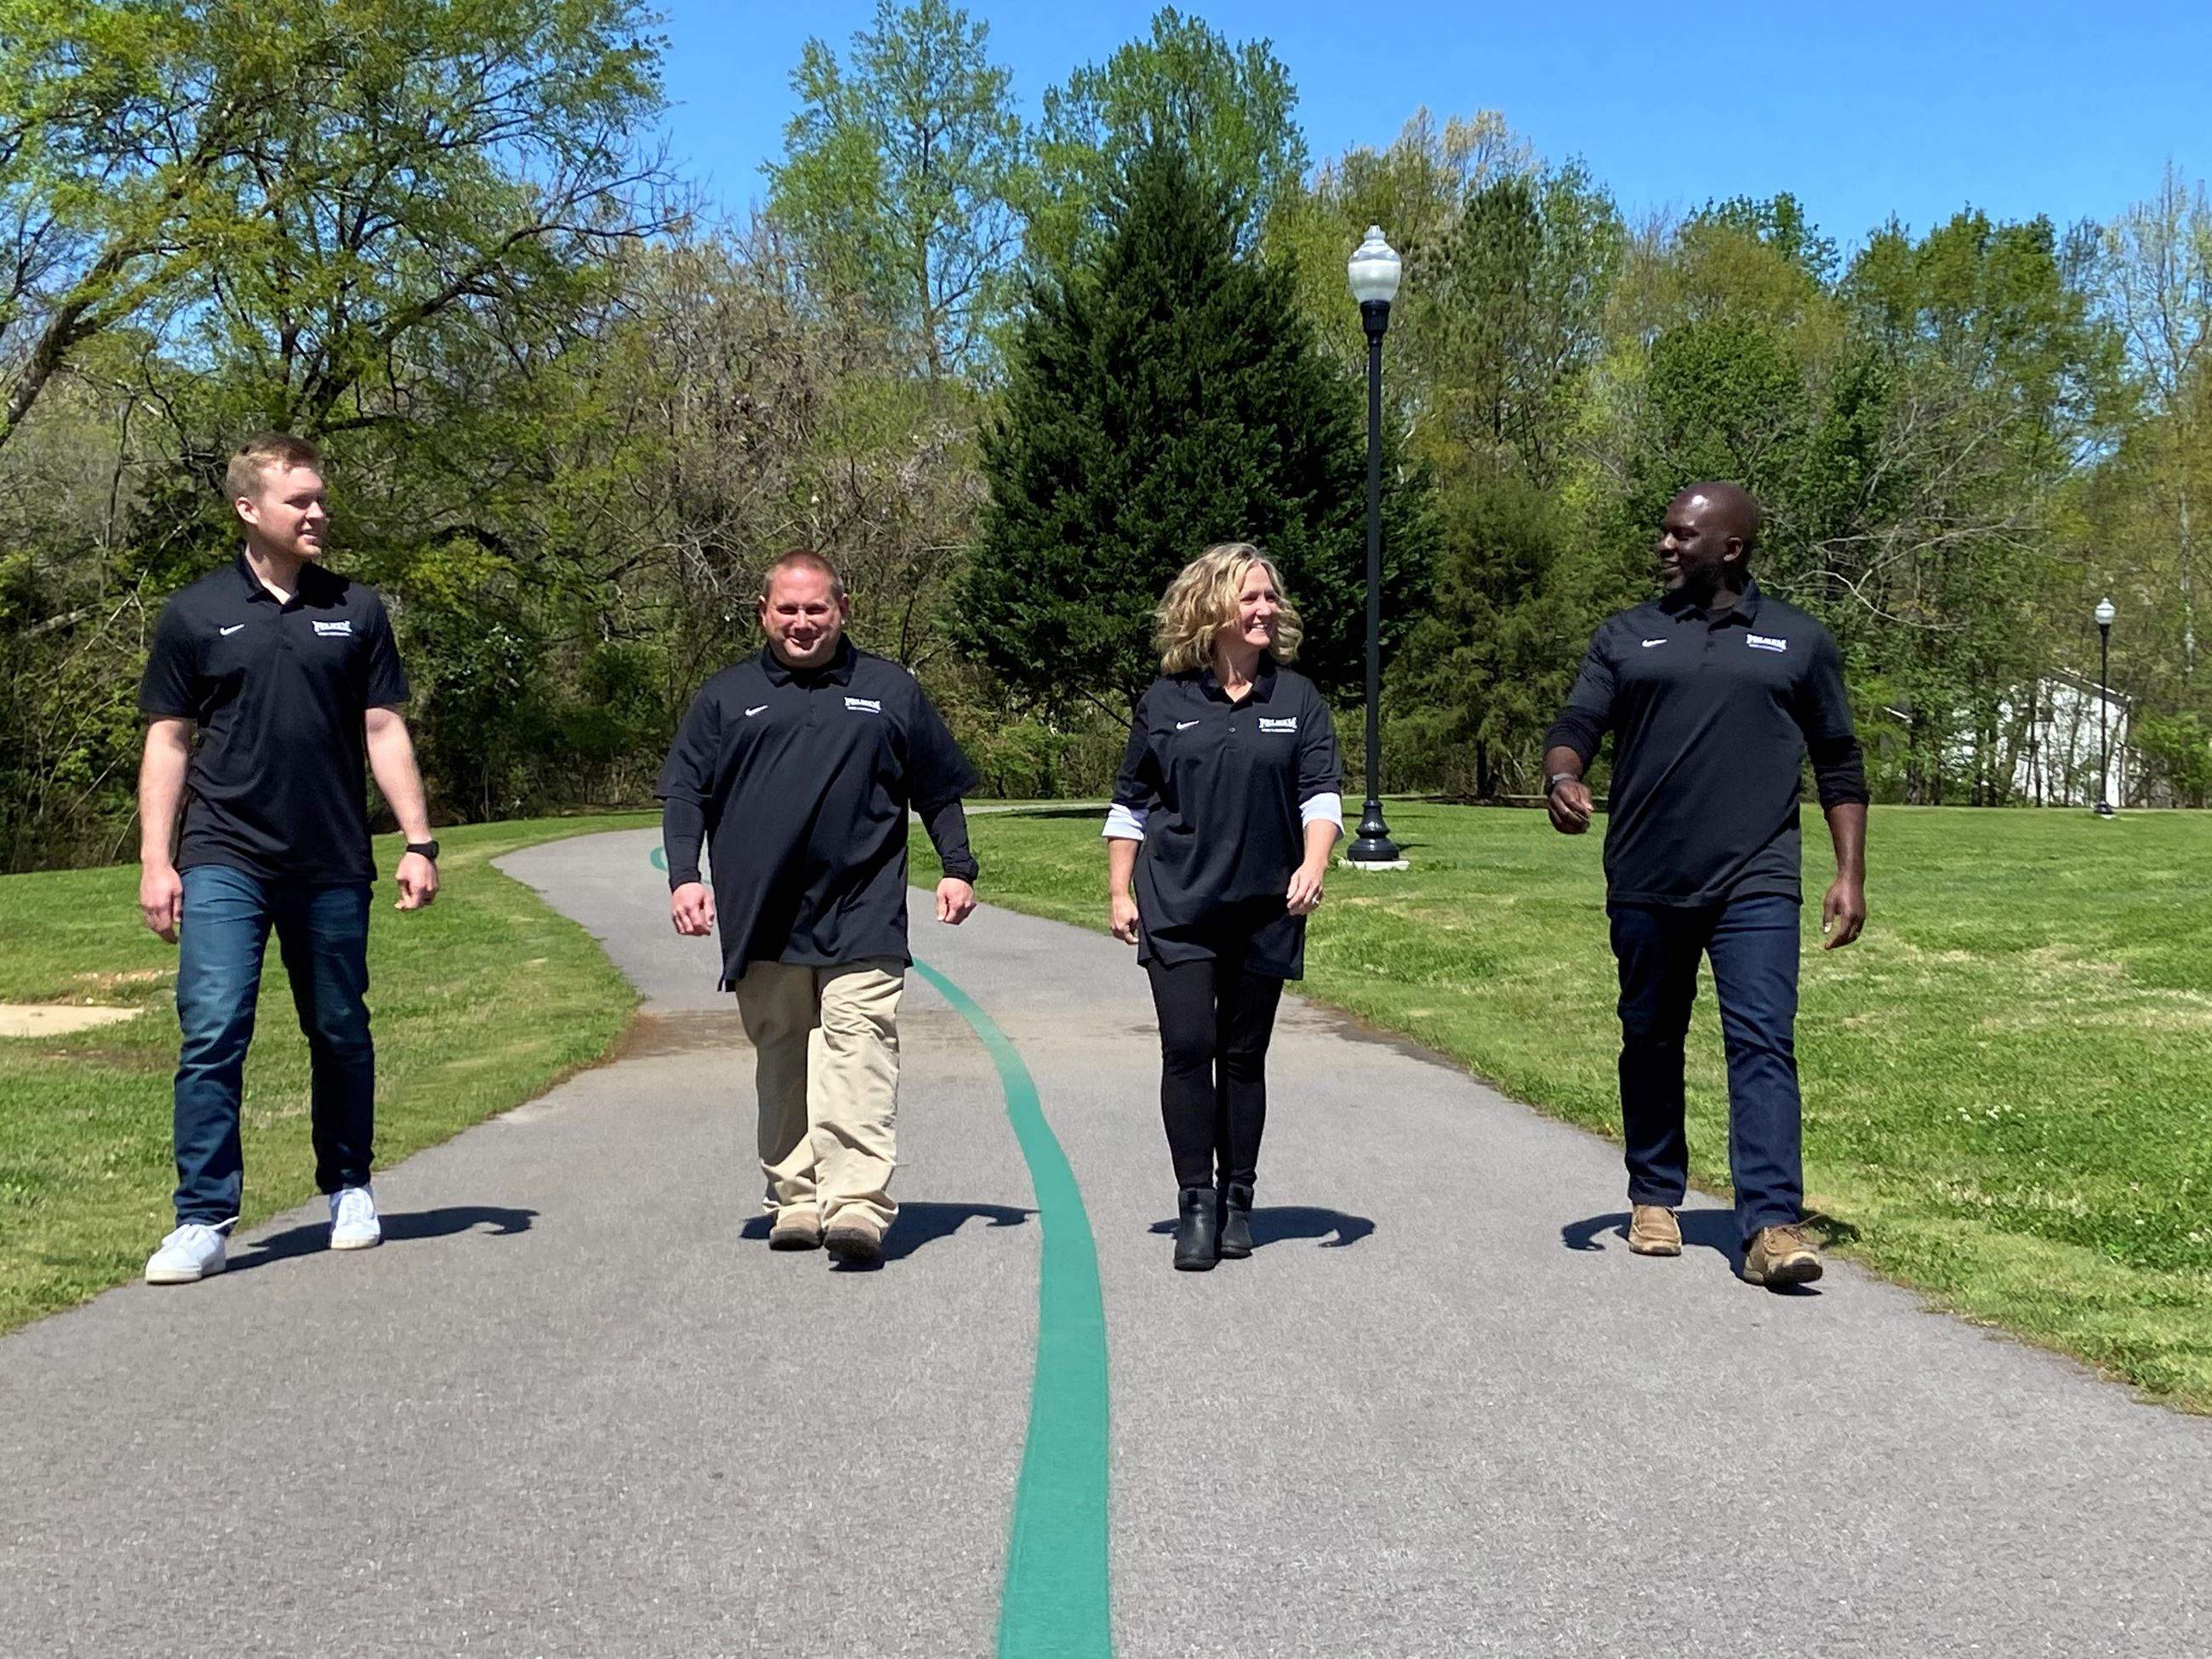 picture of park staff (three men and one woman) walking on a trail